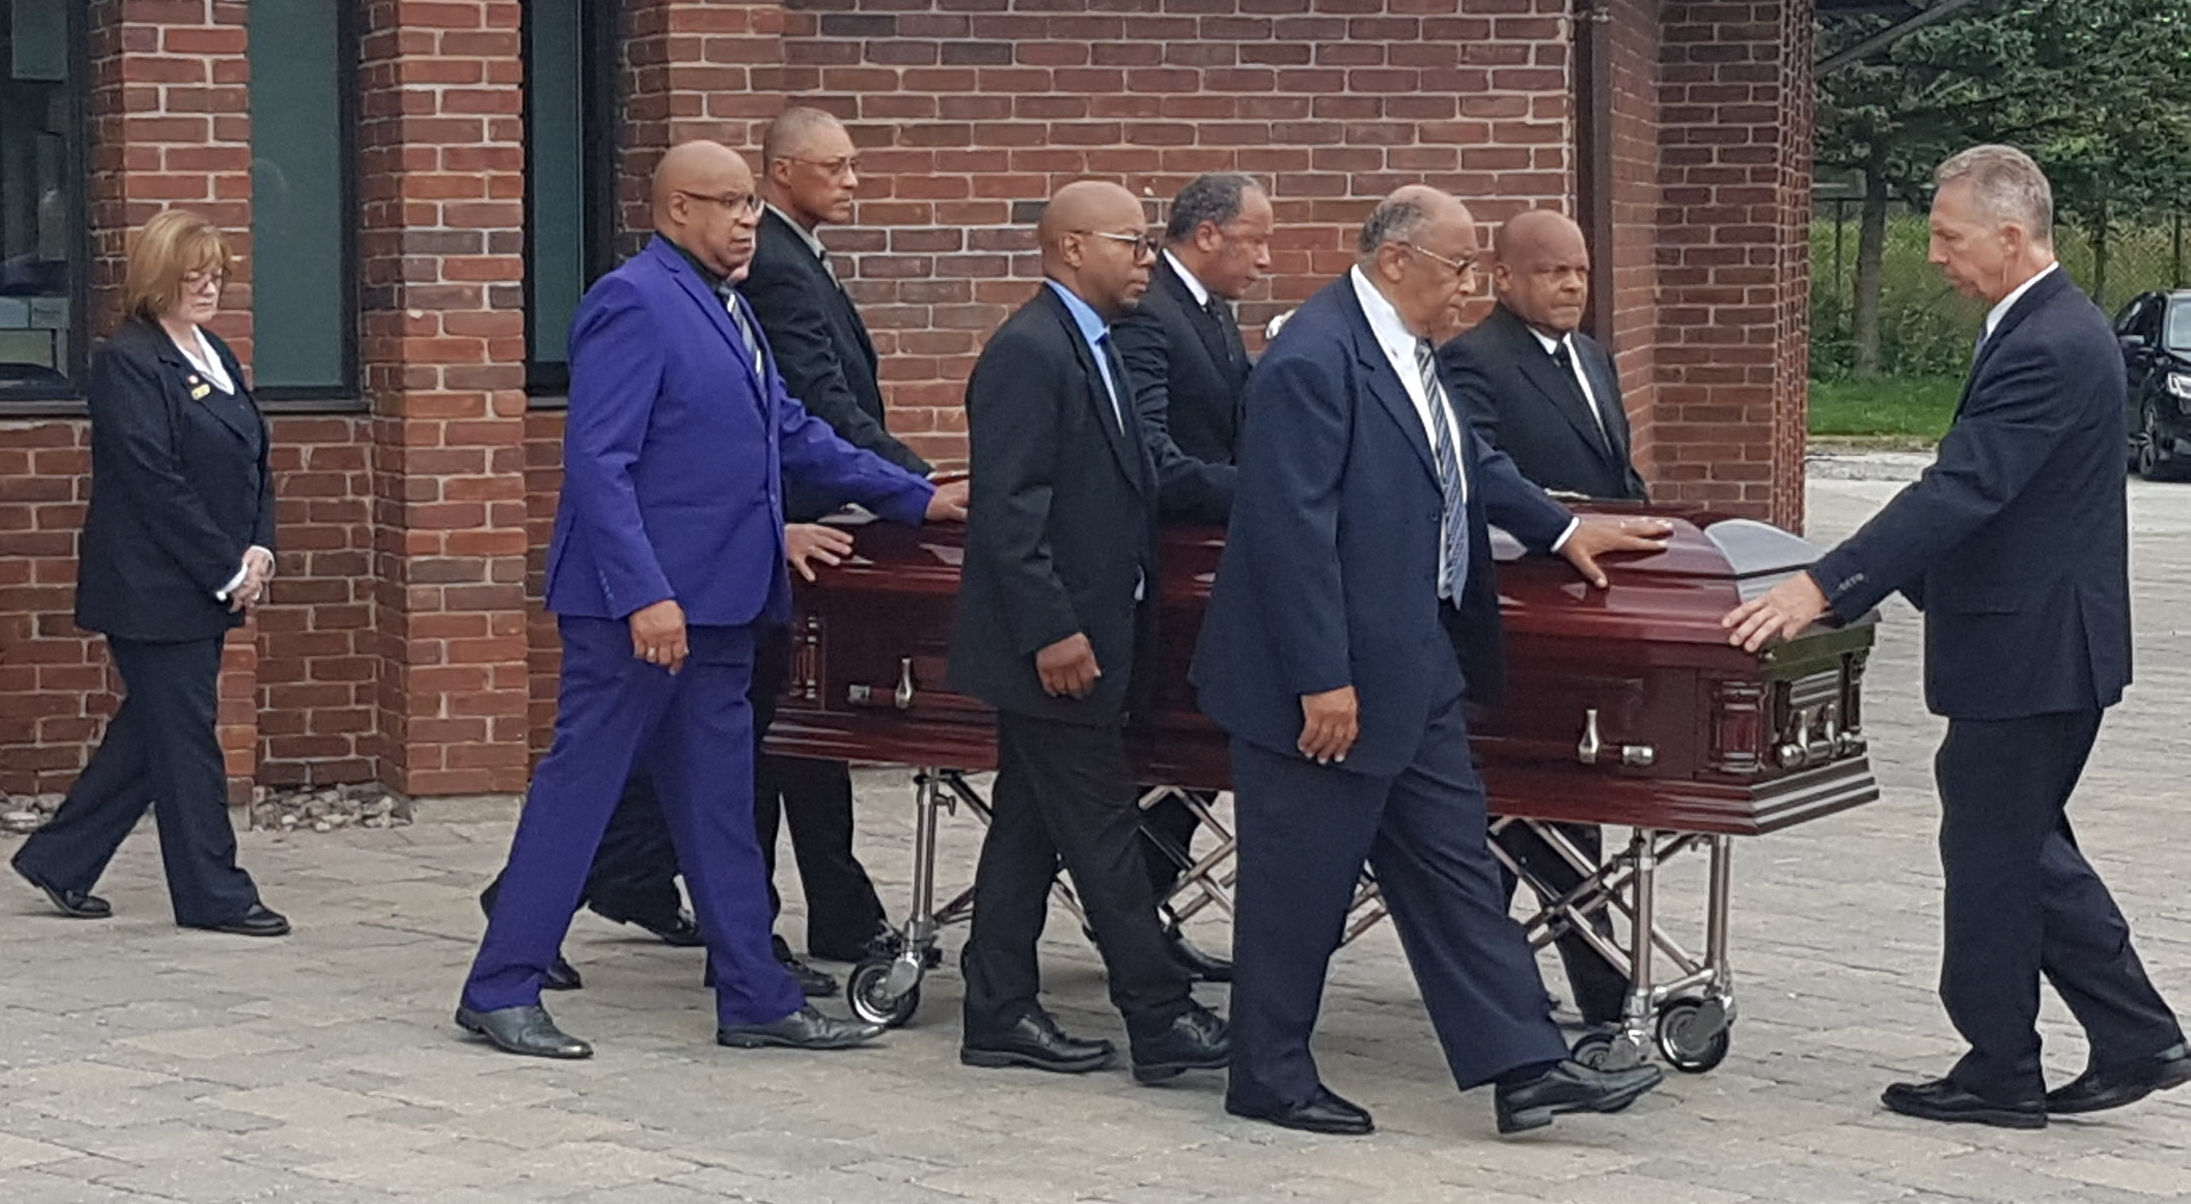 Bromley Armstrong's casket carried from the church